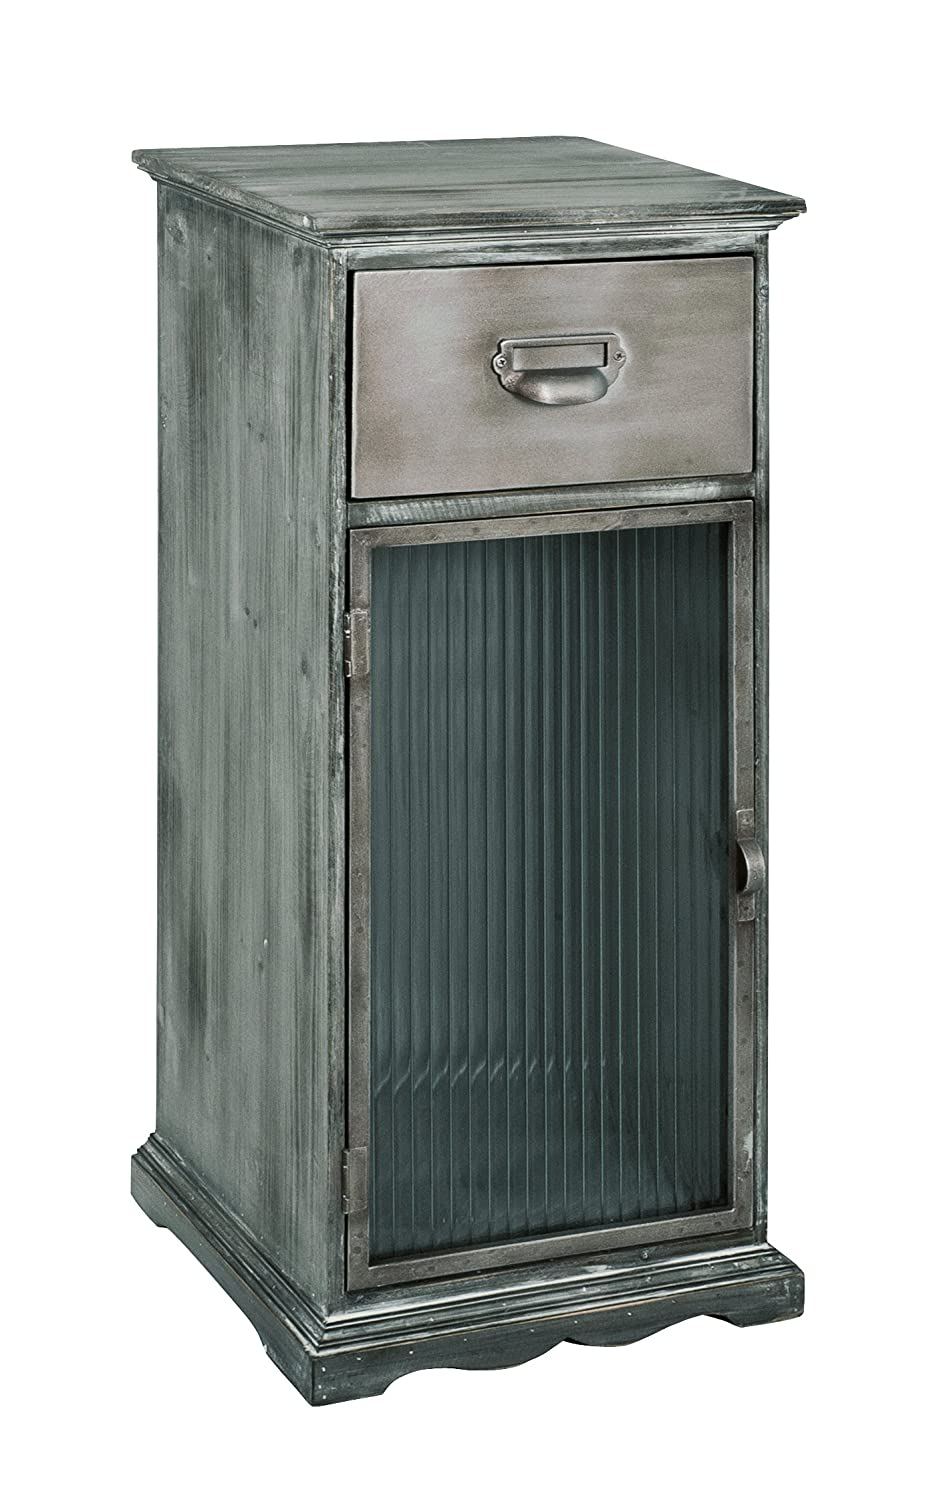 HAKU Furniture Chalked Up Copper Antique Commode 72 x 30 x 30 cm 27961